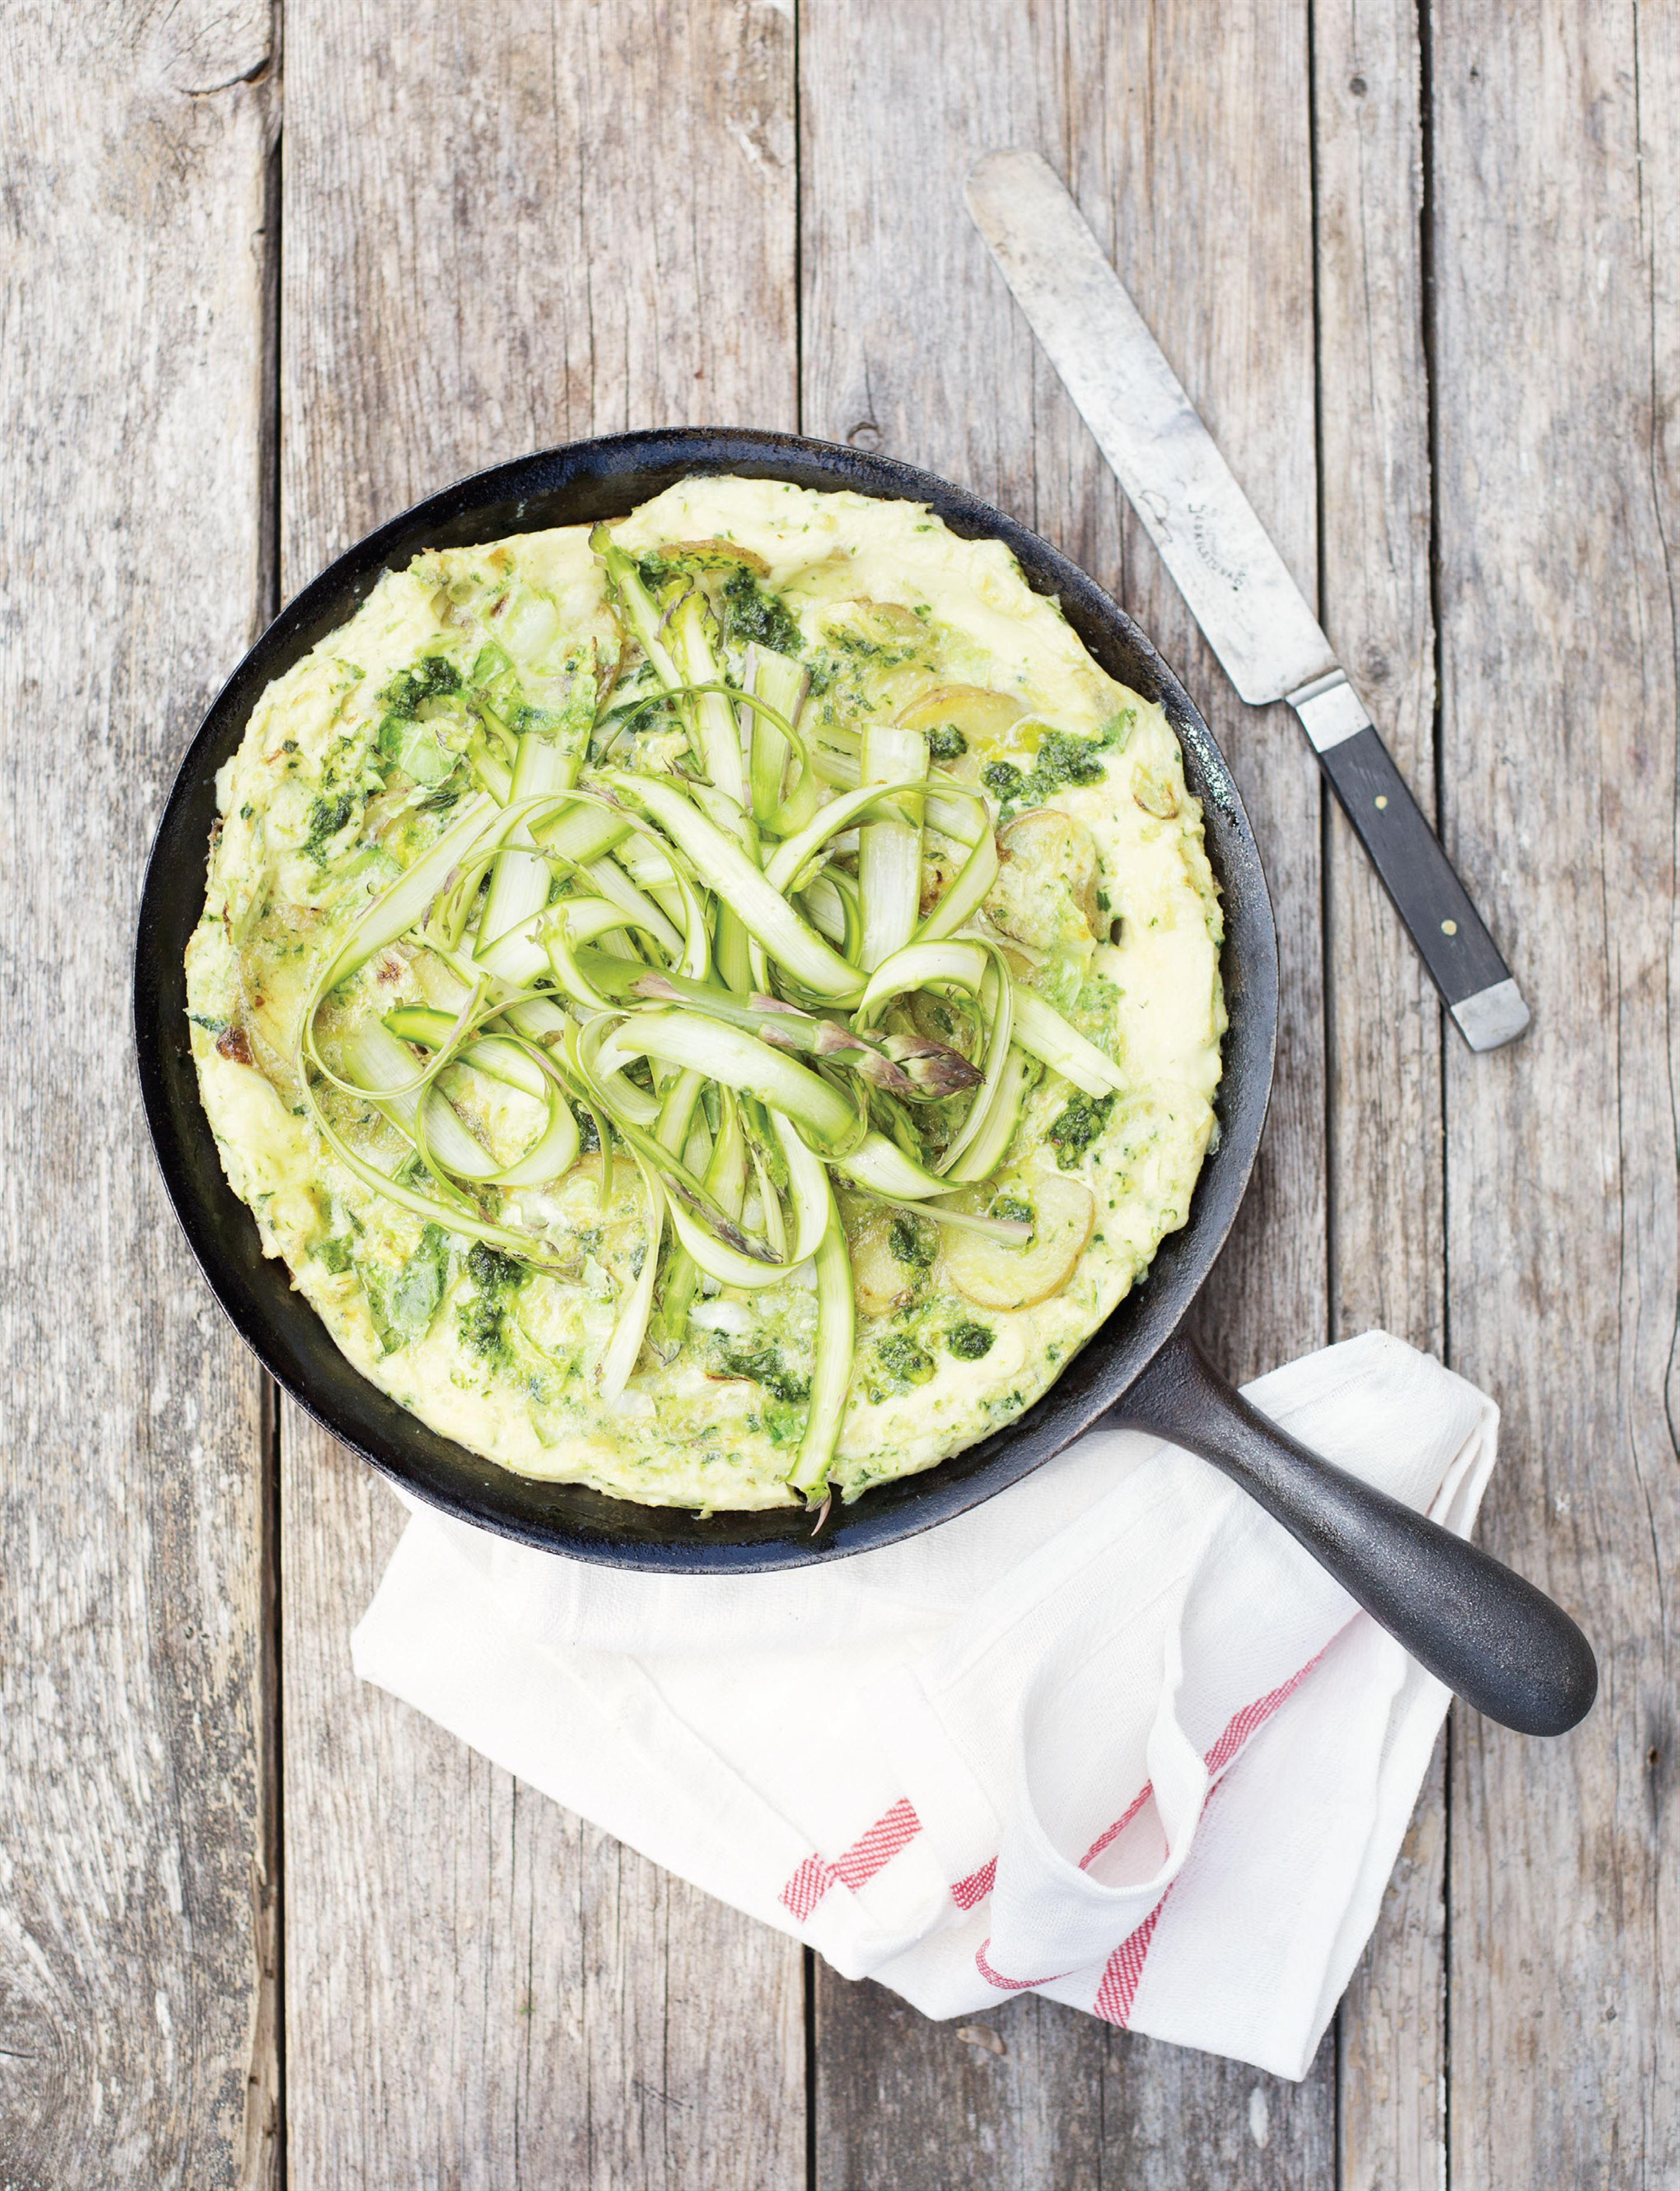 Herb and asparagus frittata